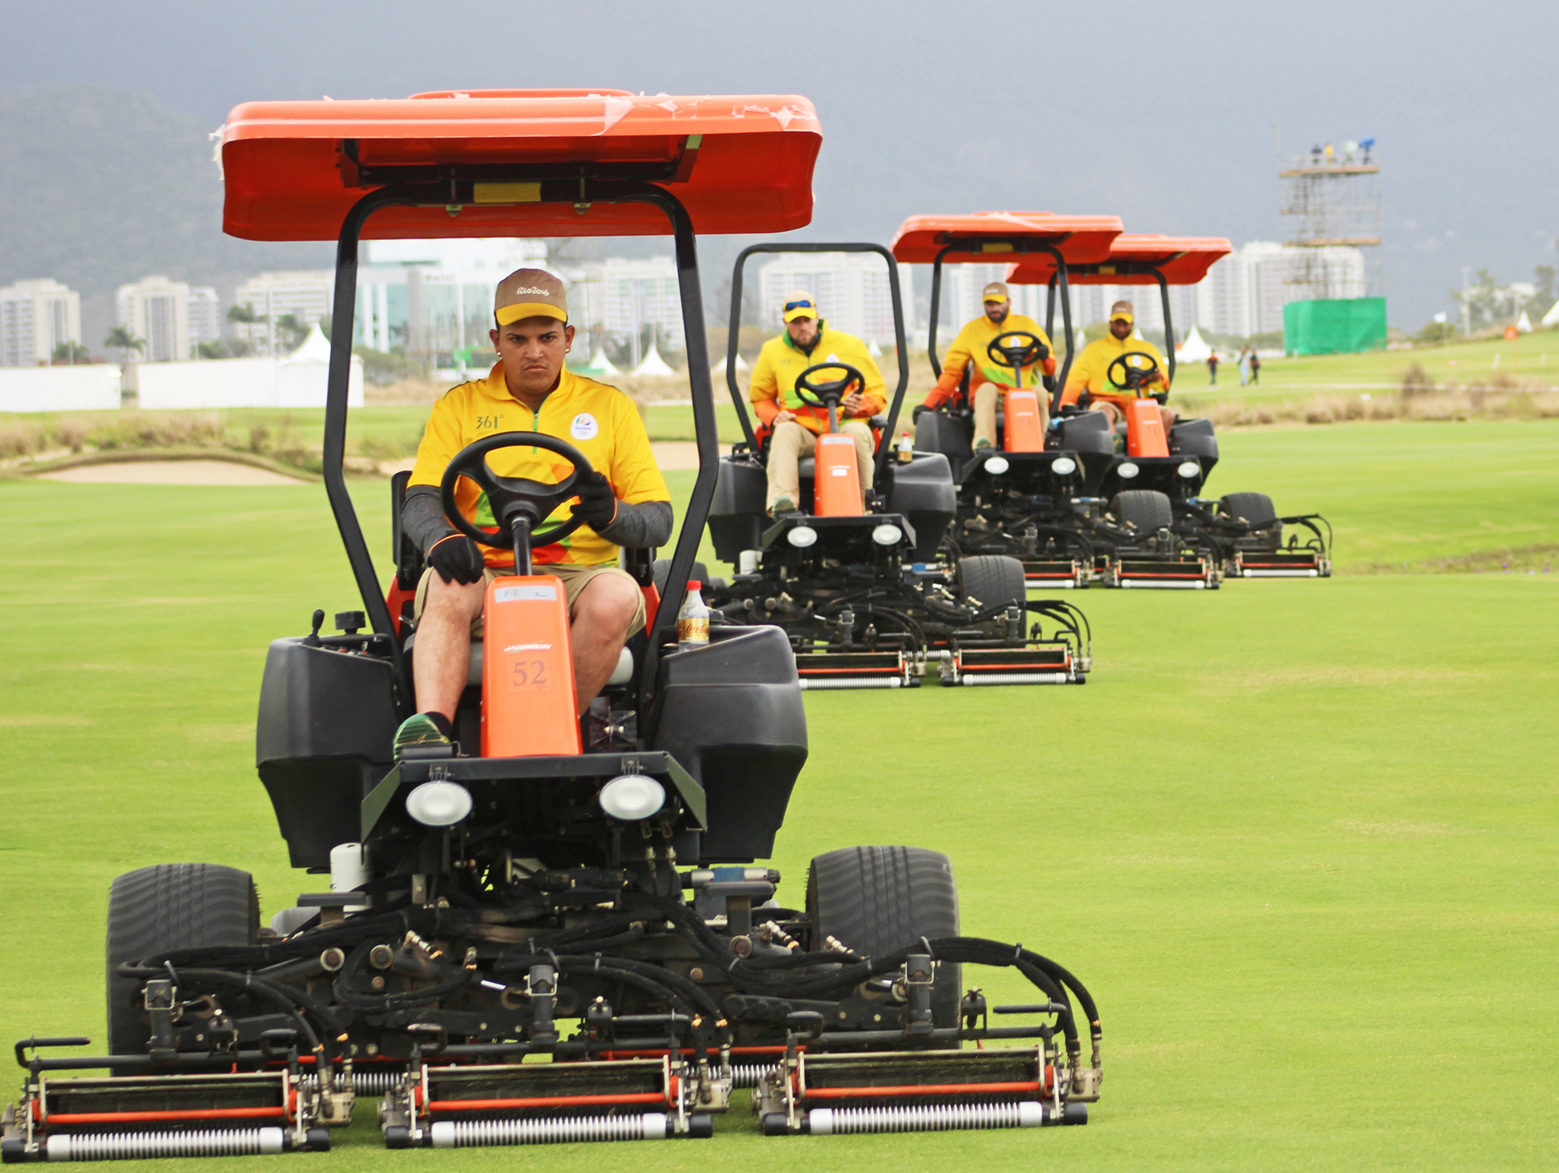 Jacobsen Equipment Prepares Rio Golf Course as Justin Rose Wins Gold Medal